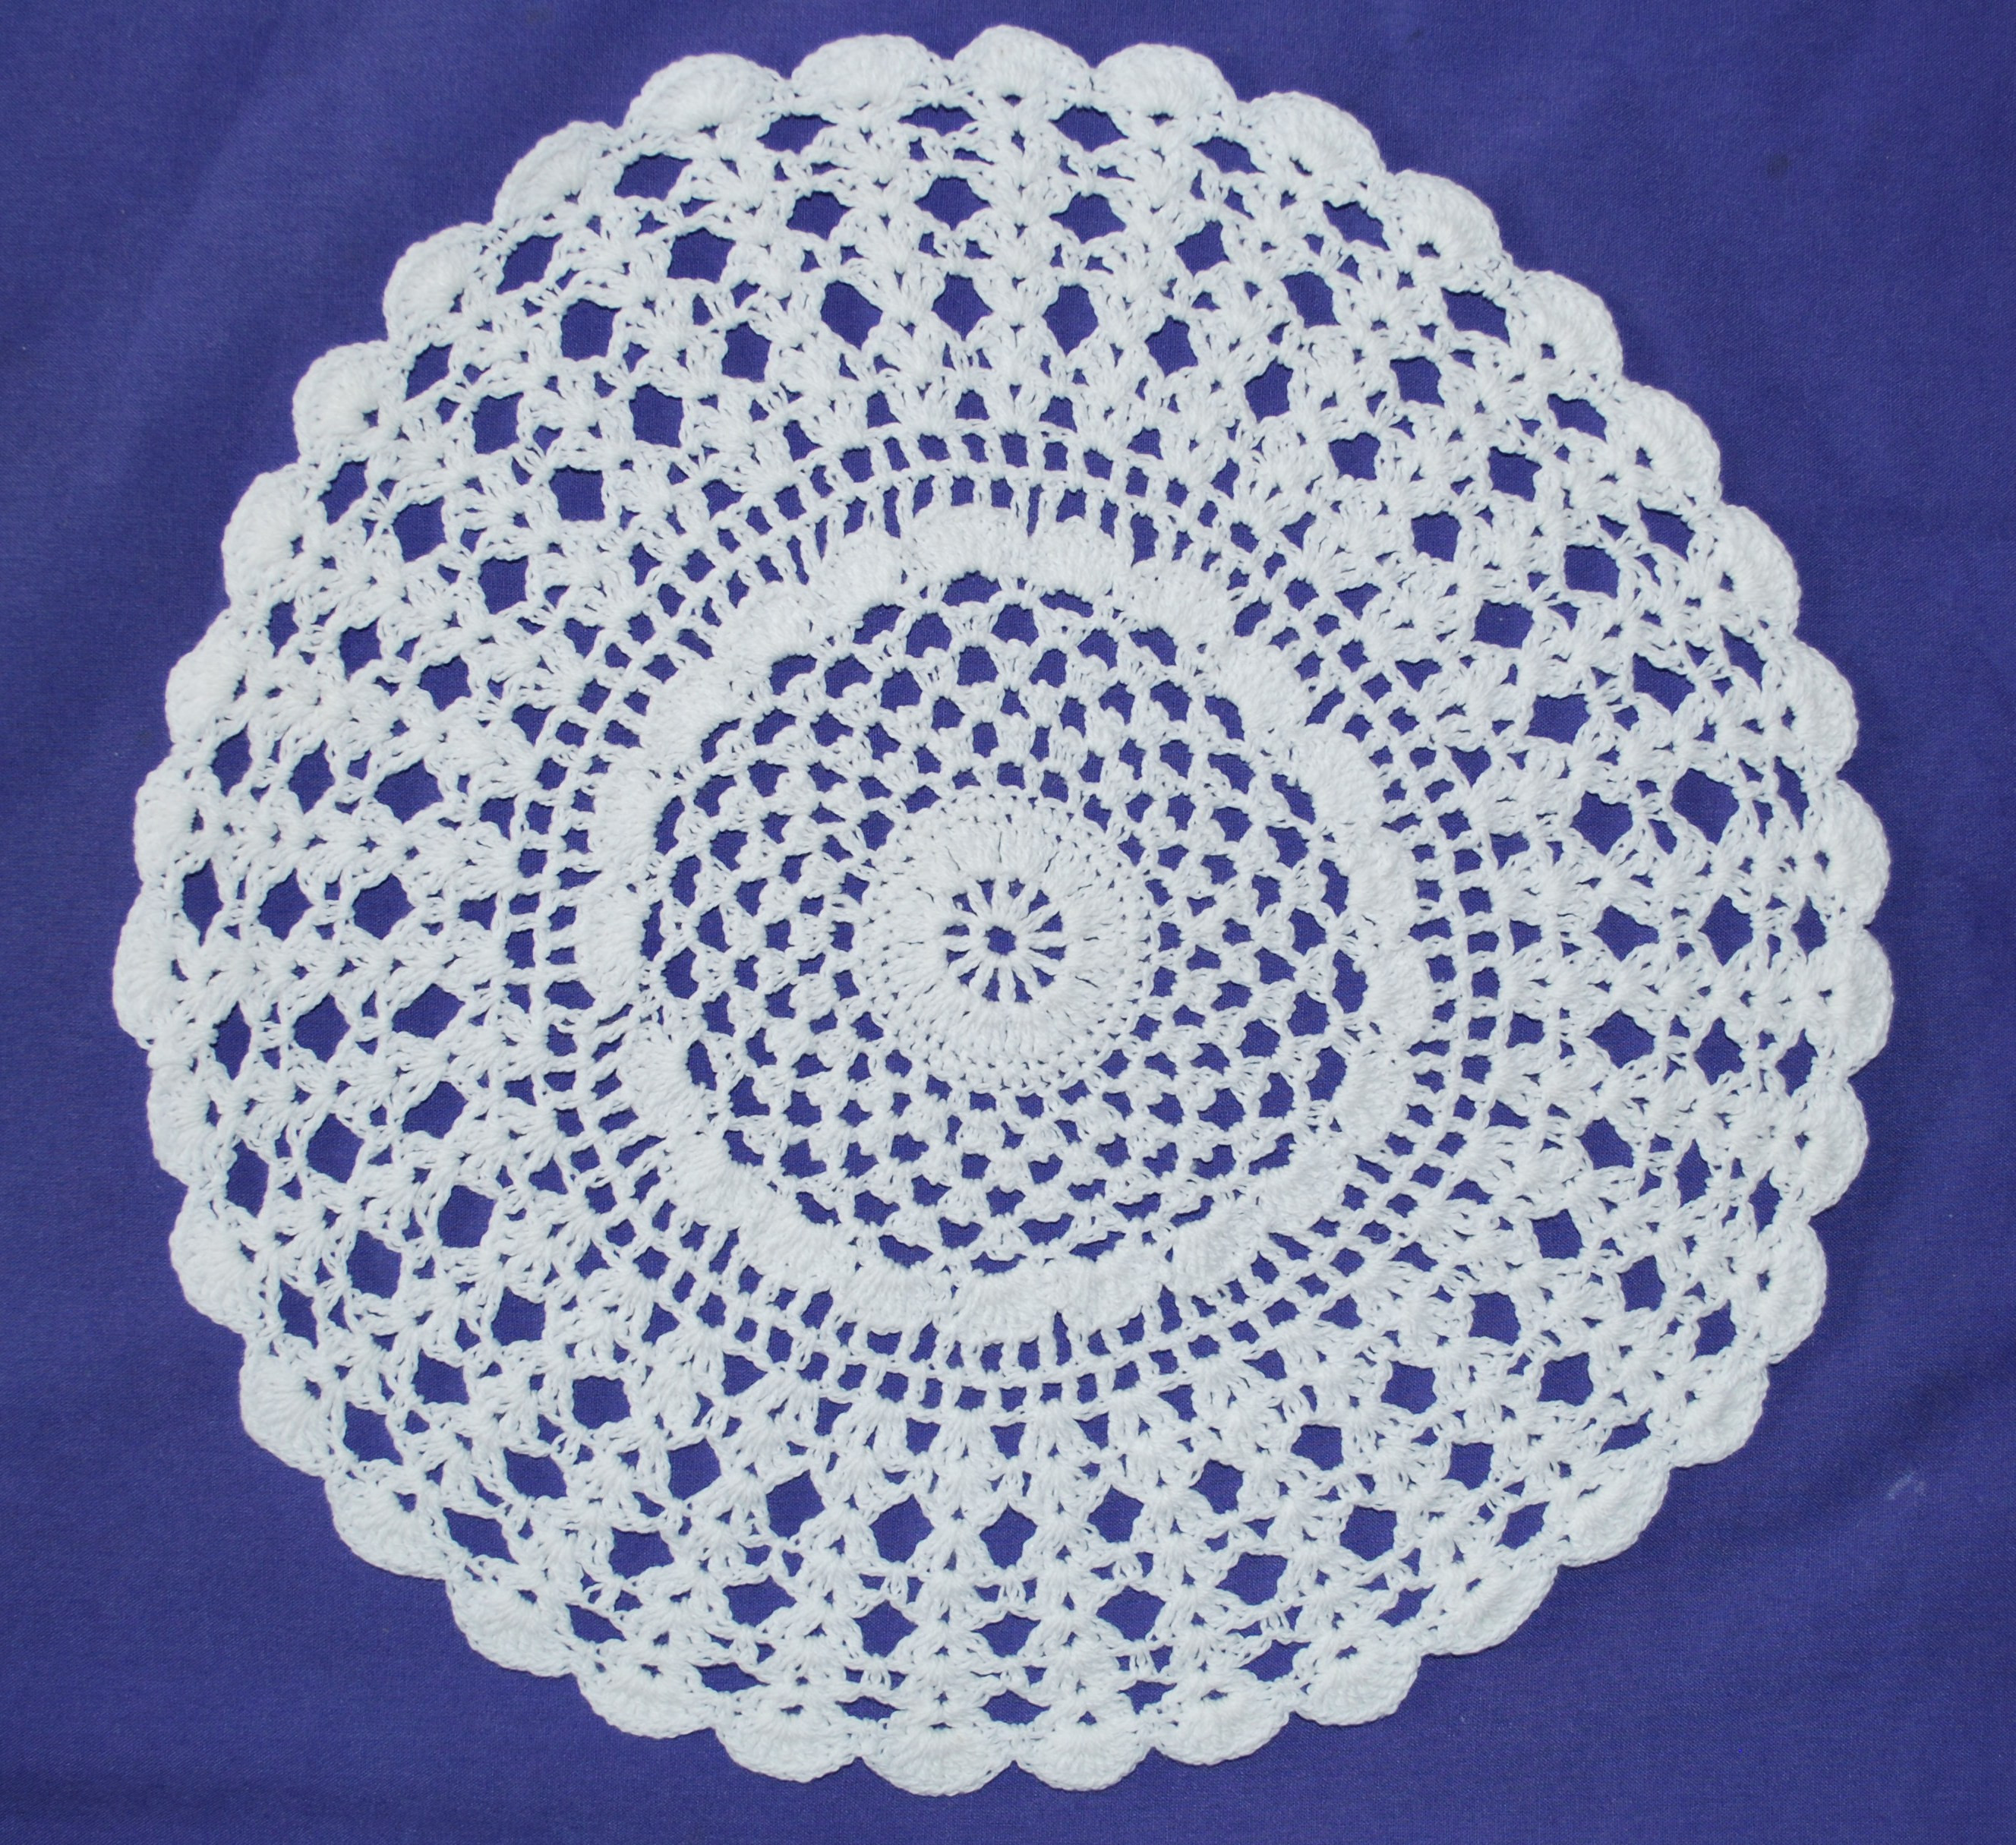 Best Of Crochet Lace Doilies Crochet Lace Of Amazing 43 Photos Crochet Lace